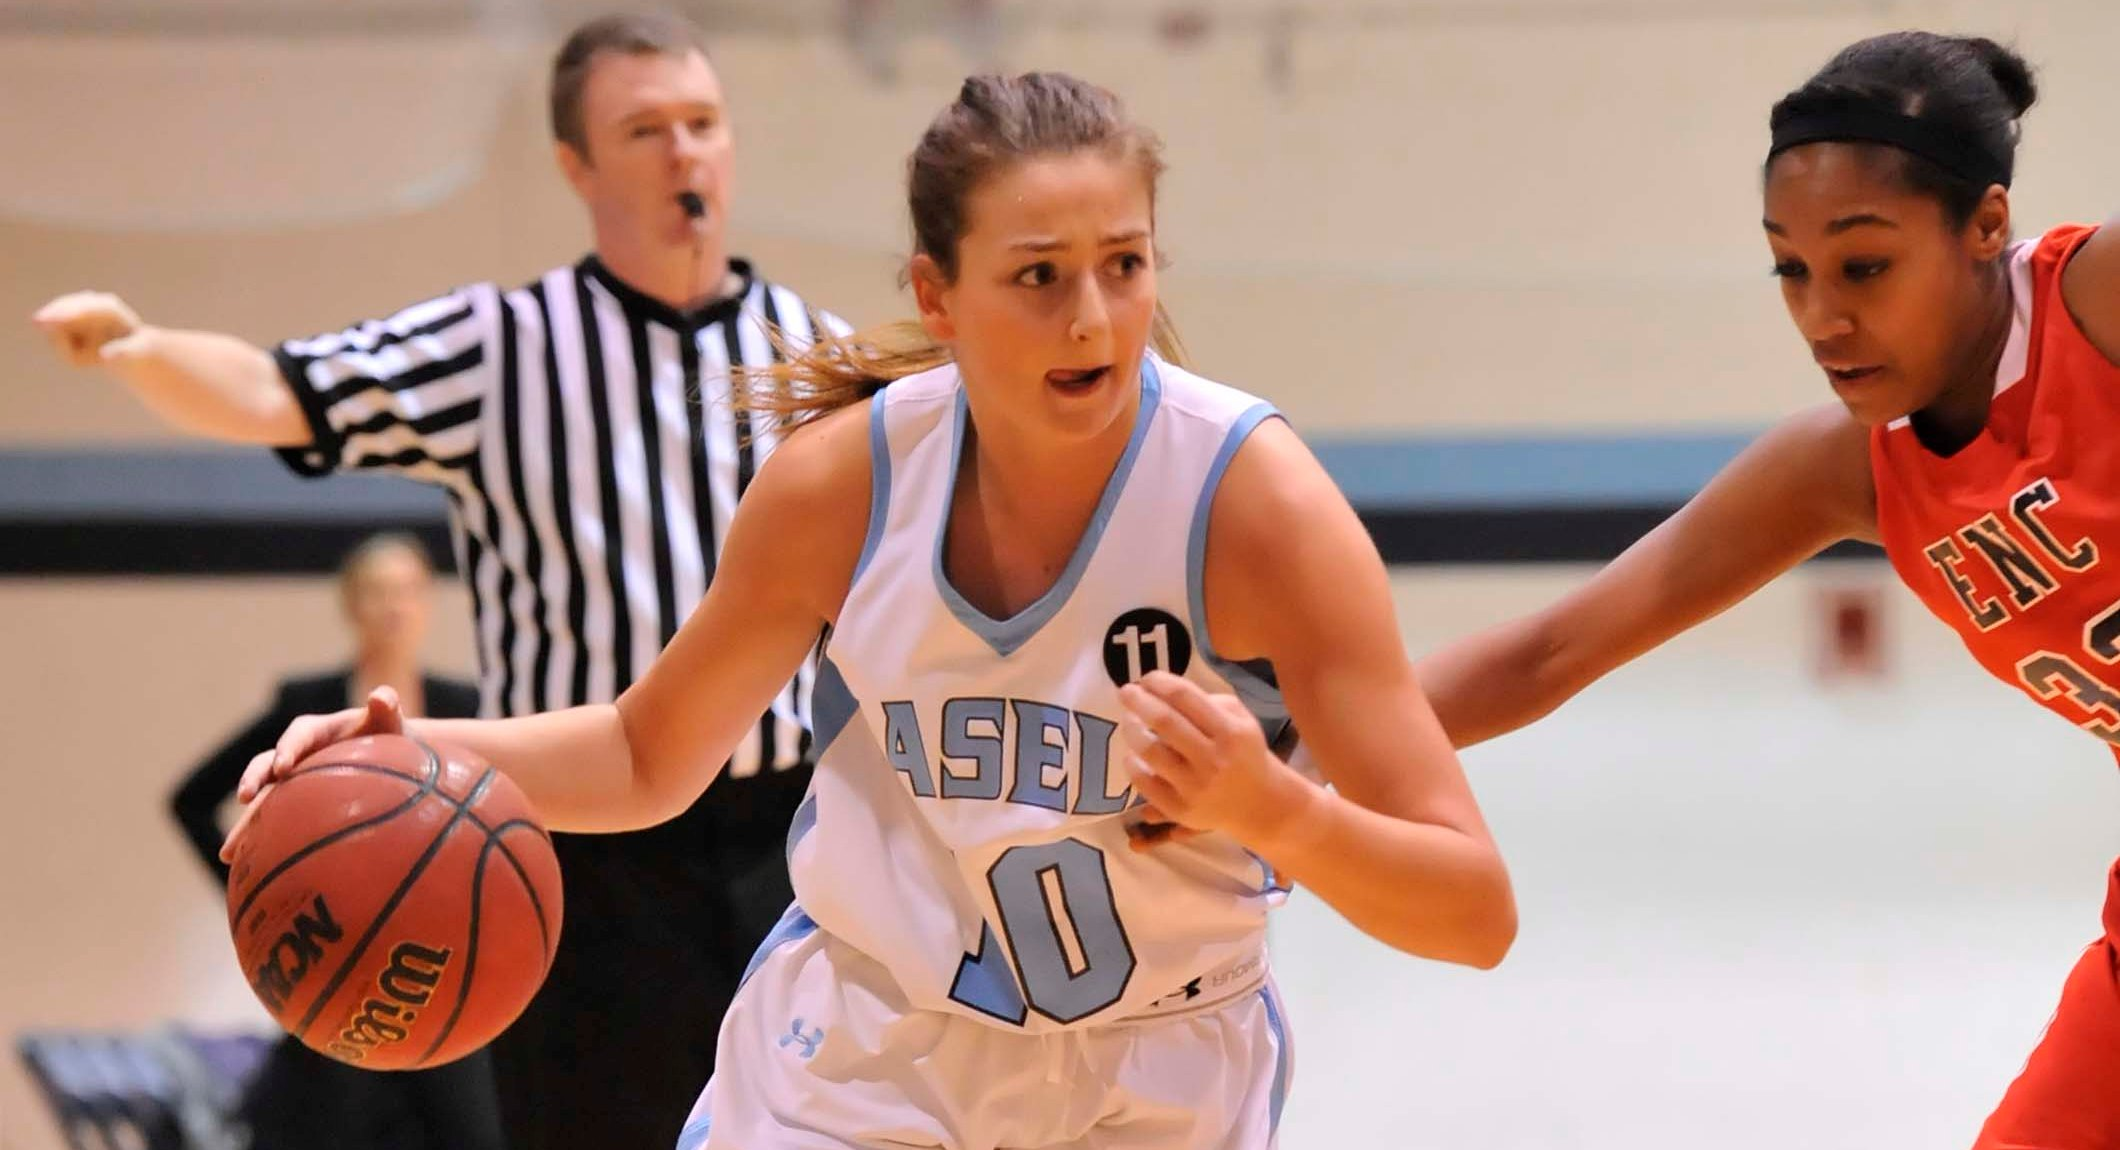 Women's Basketball Tops Wentworth in 58-55 Victory